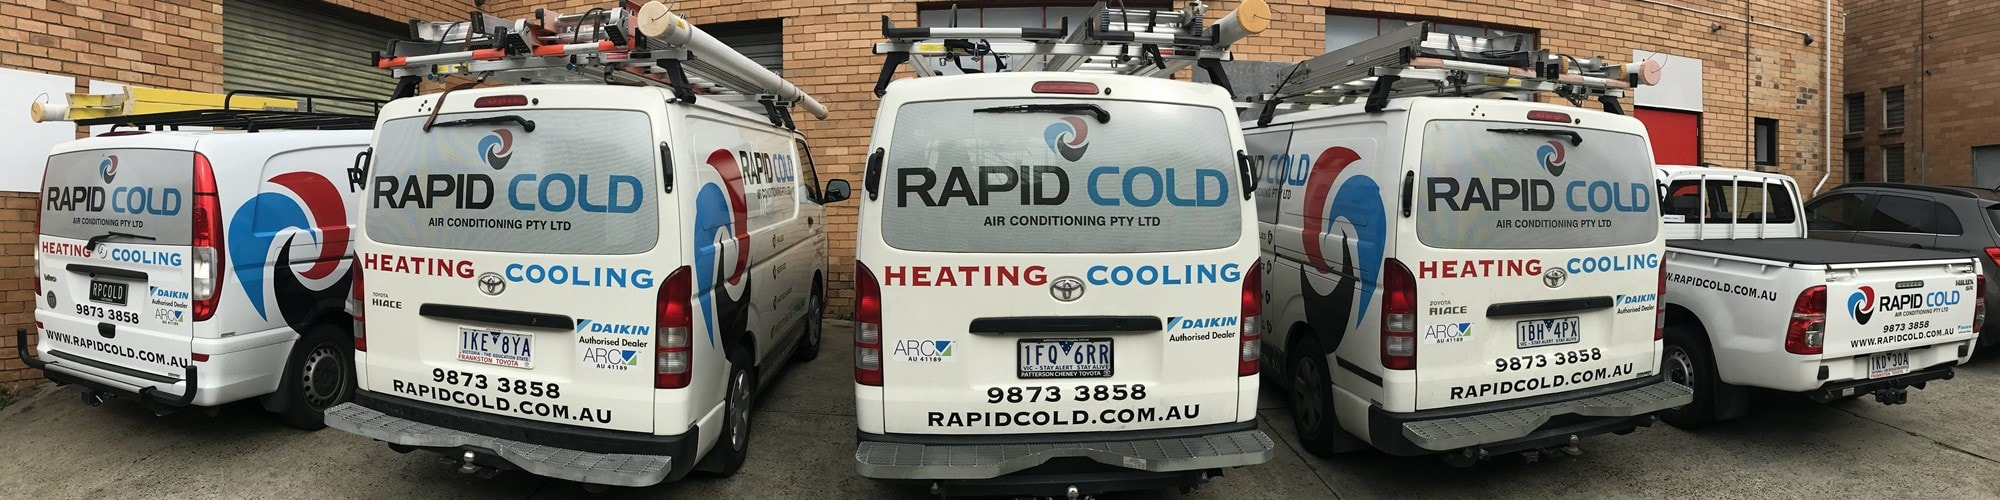 rapid cold air conditioning vehicles